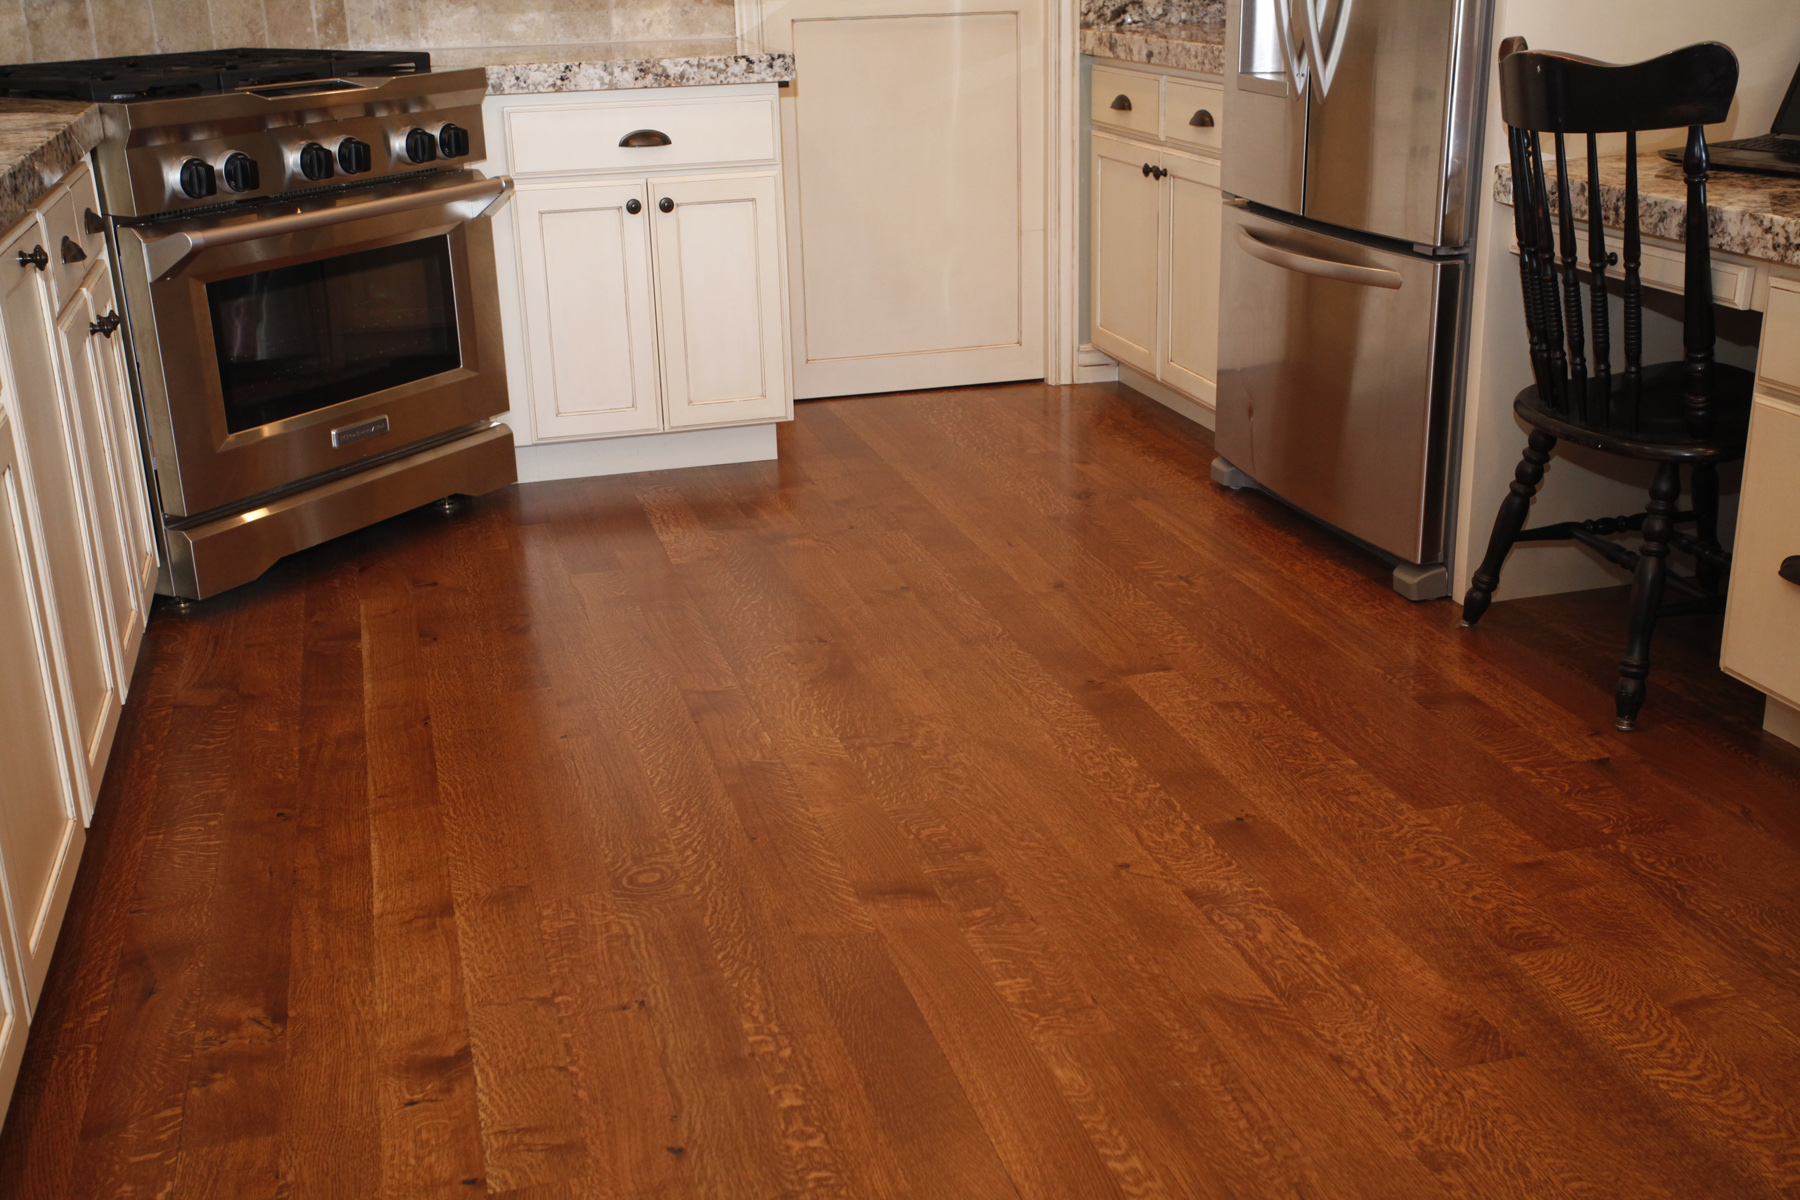 Wood Floors For Kitchens Gallery